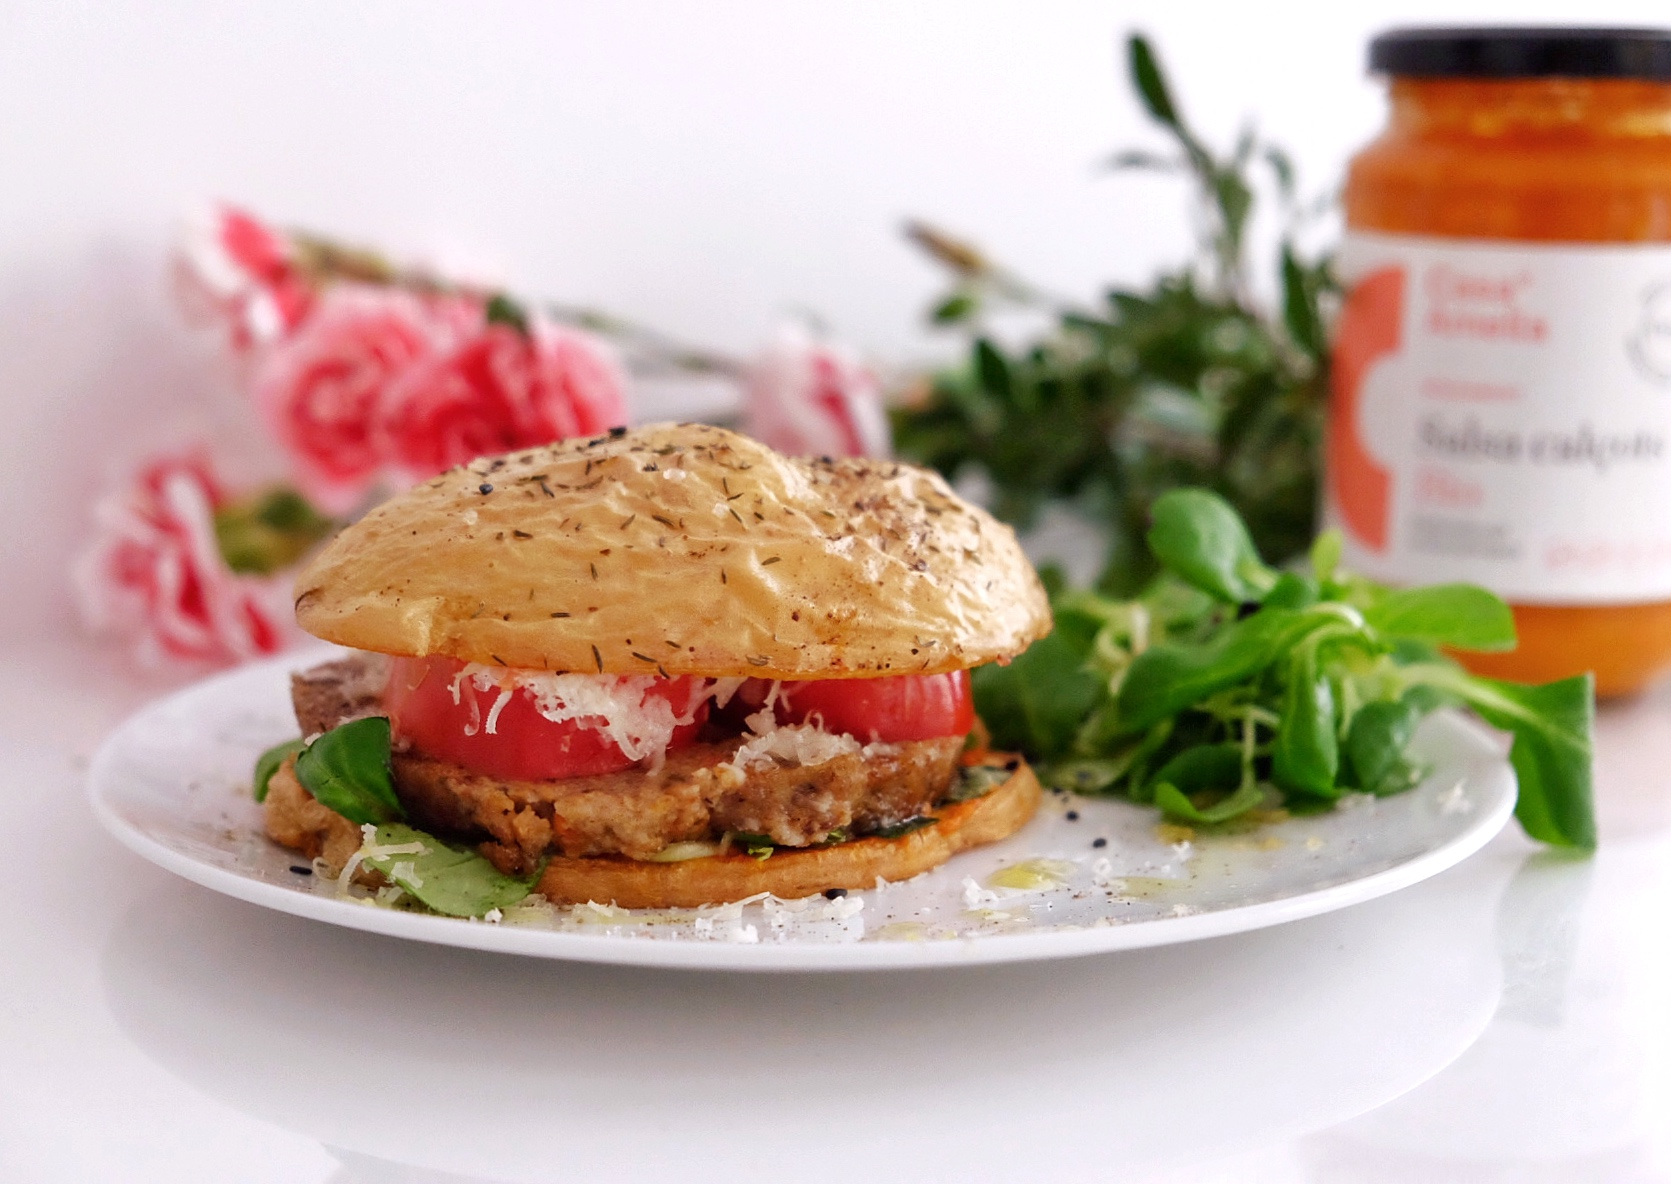 Burger vegetariana sin pan